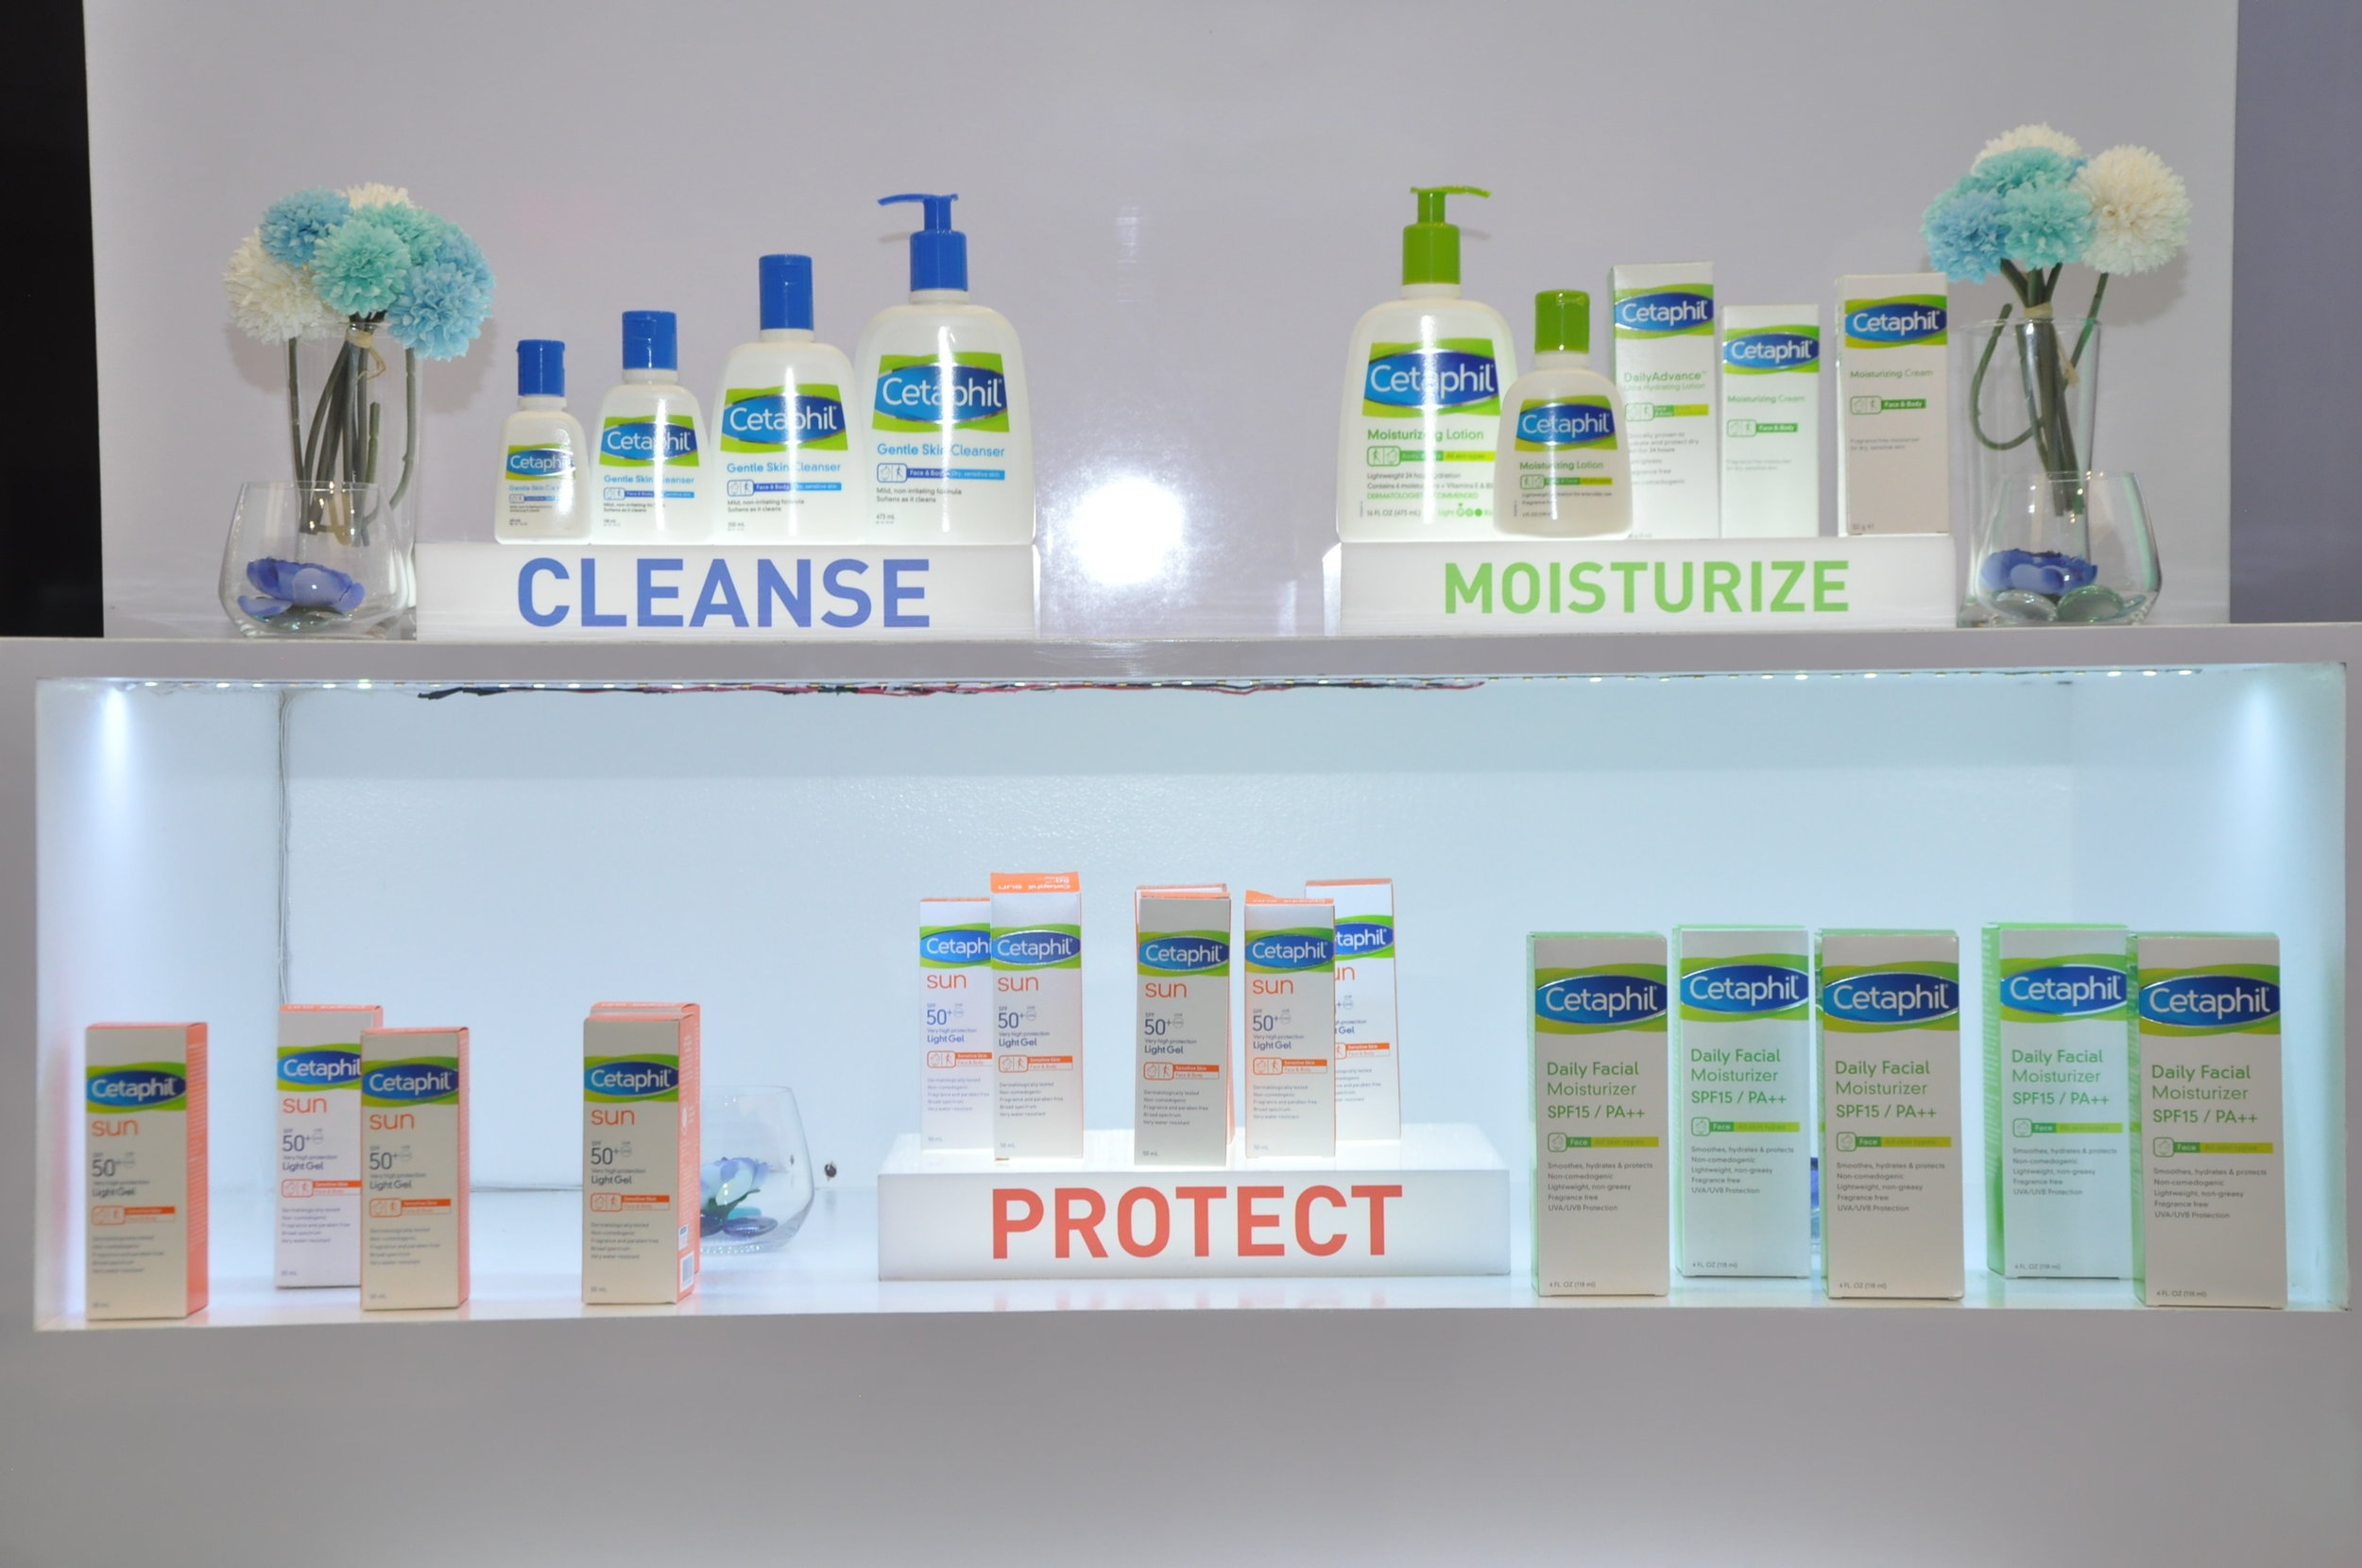 Cleanse and moisturize with Cetaphil.JPG